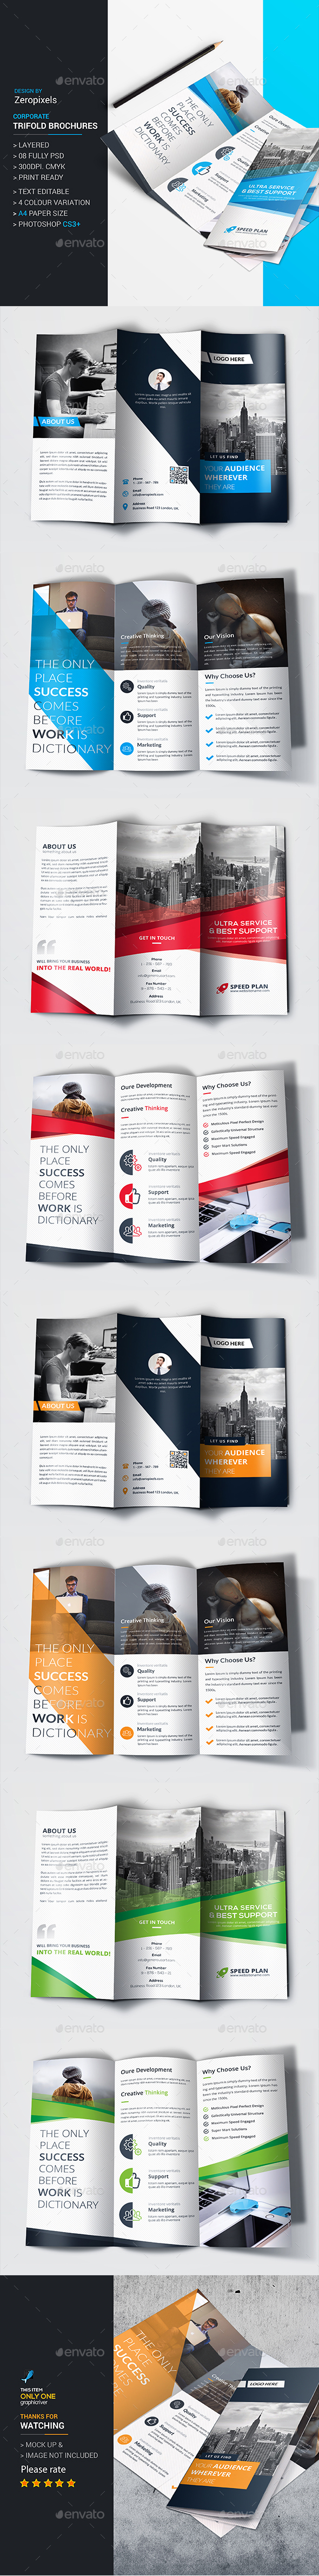 2 Corporate Trifold Brochure Templates PSD. Download here: http://graphicriver.net/item/corporate-trifold-bundle/16730640?ref=ksioks